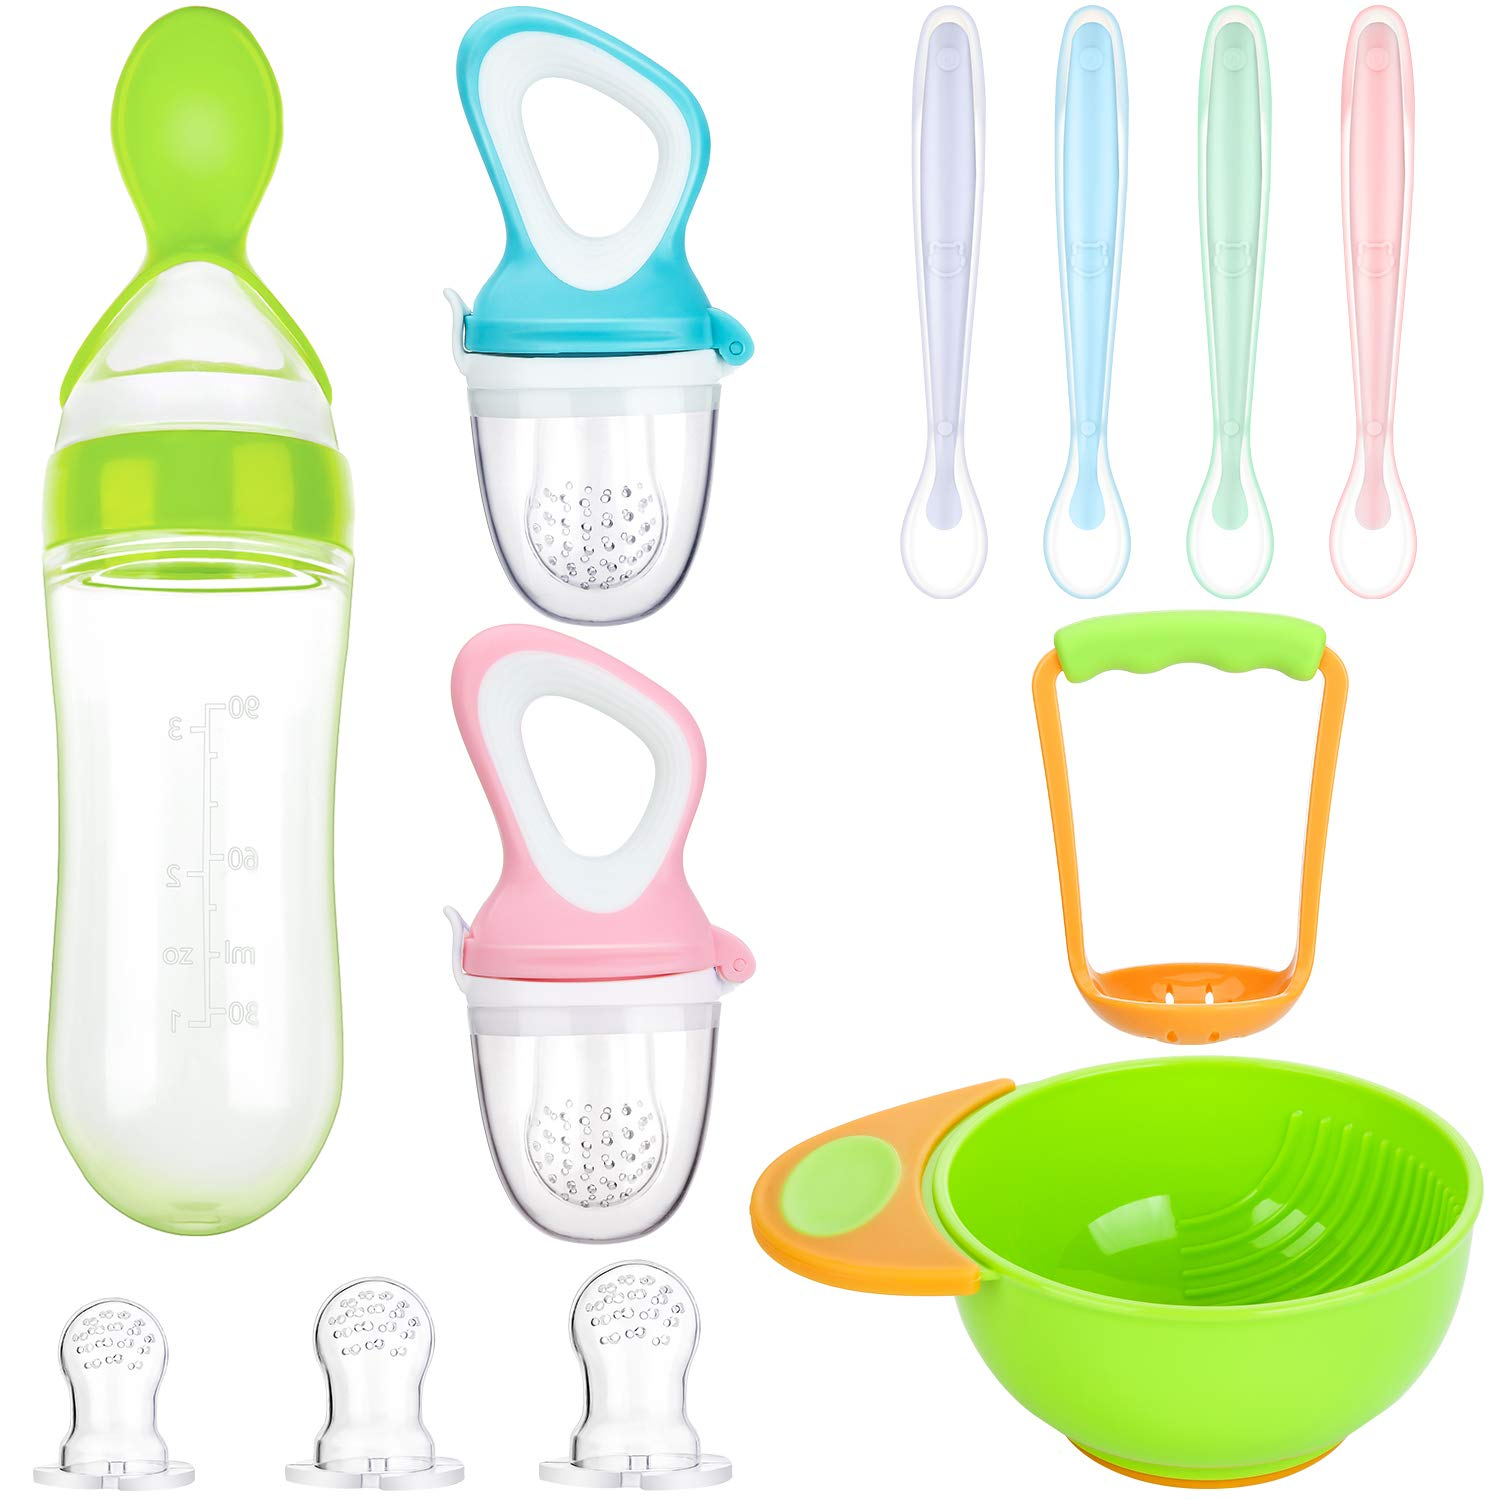 11 Piece Food Feeder Baby Teething Pacifiers Mash and Serve Bowl Silicone Food Dispensing Spoon 4 Soft-Tip Silicone Baby Spoons for Toddler First Stage Feeding Set